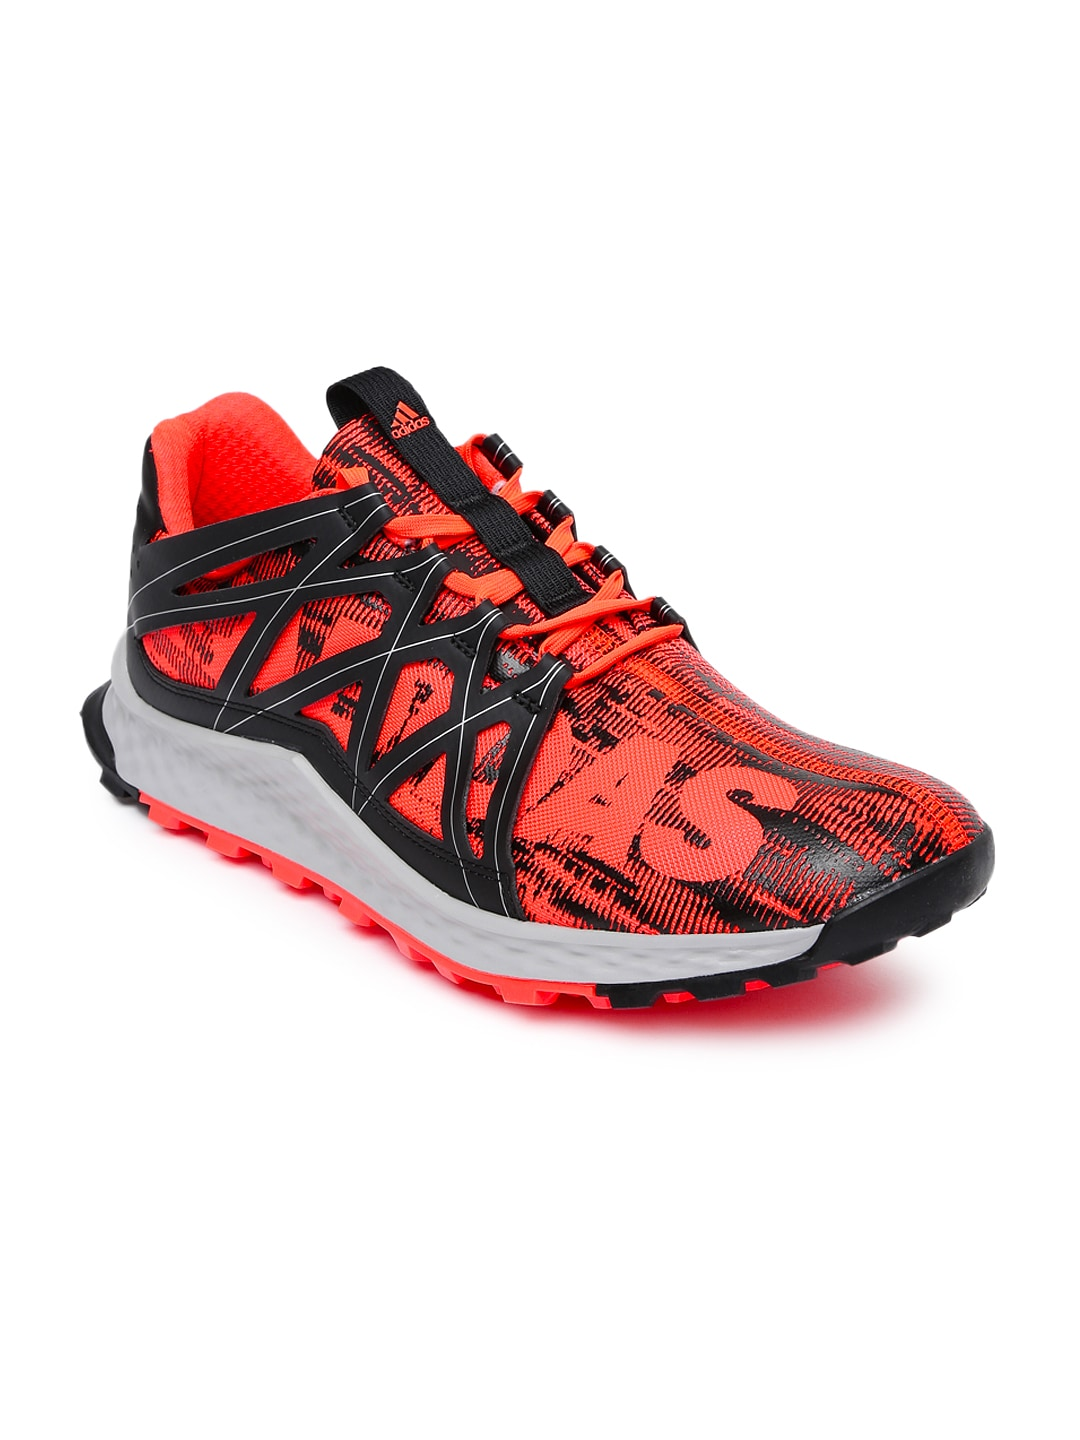 a4604b7825786 Adidas aq7508 Men Neon Orange And Black Vigor Bounce Running Shoes- Price  in India